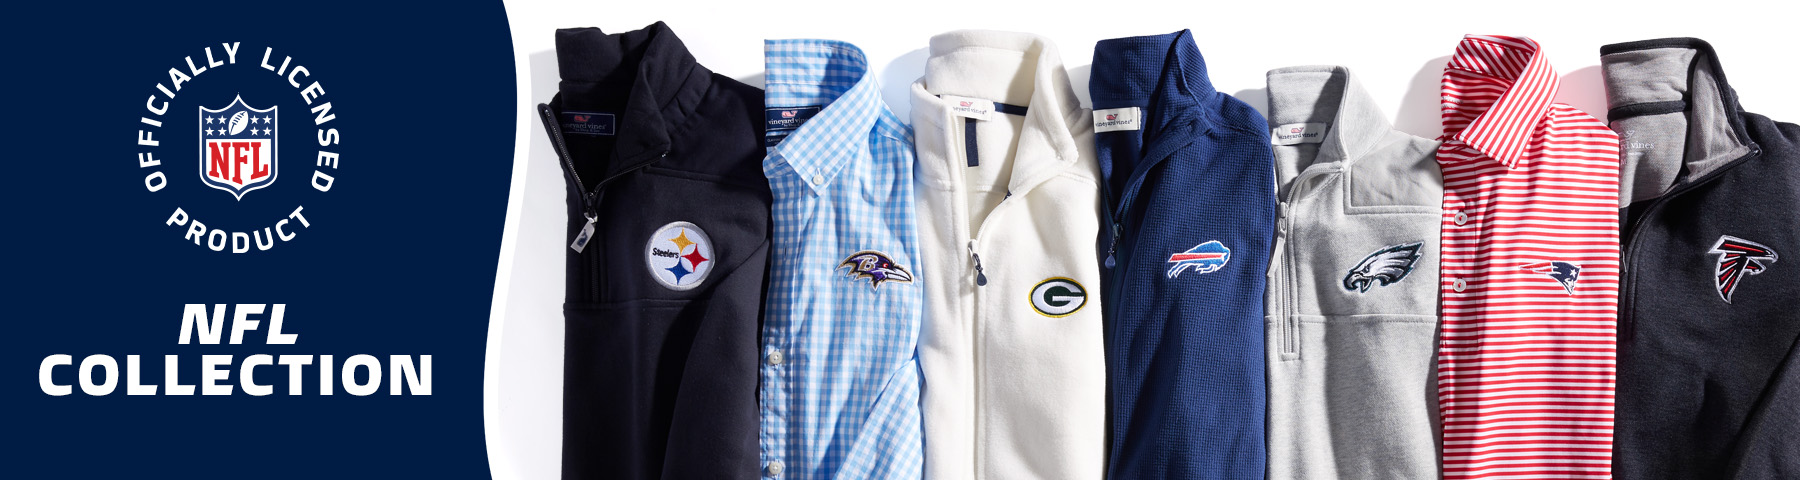 You can now customize vineyard vines official NFL products! Start by choosing your team below.